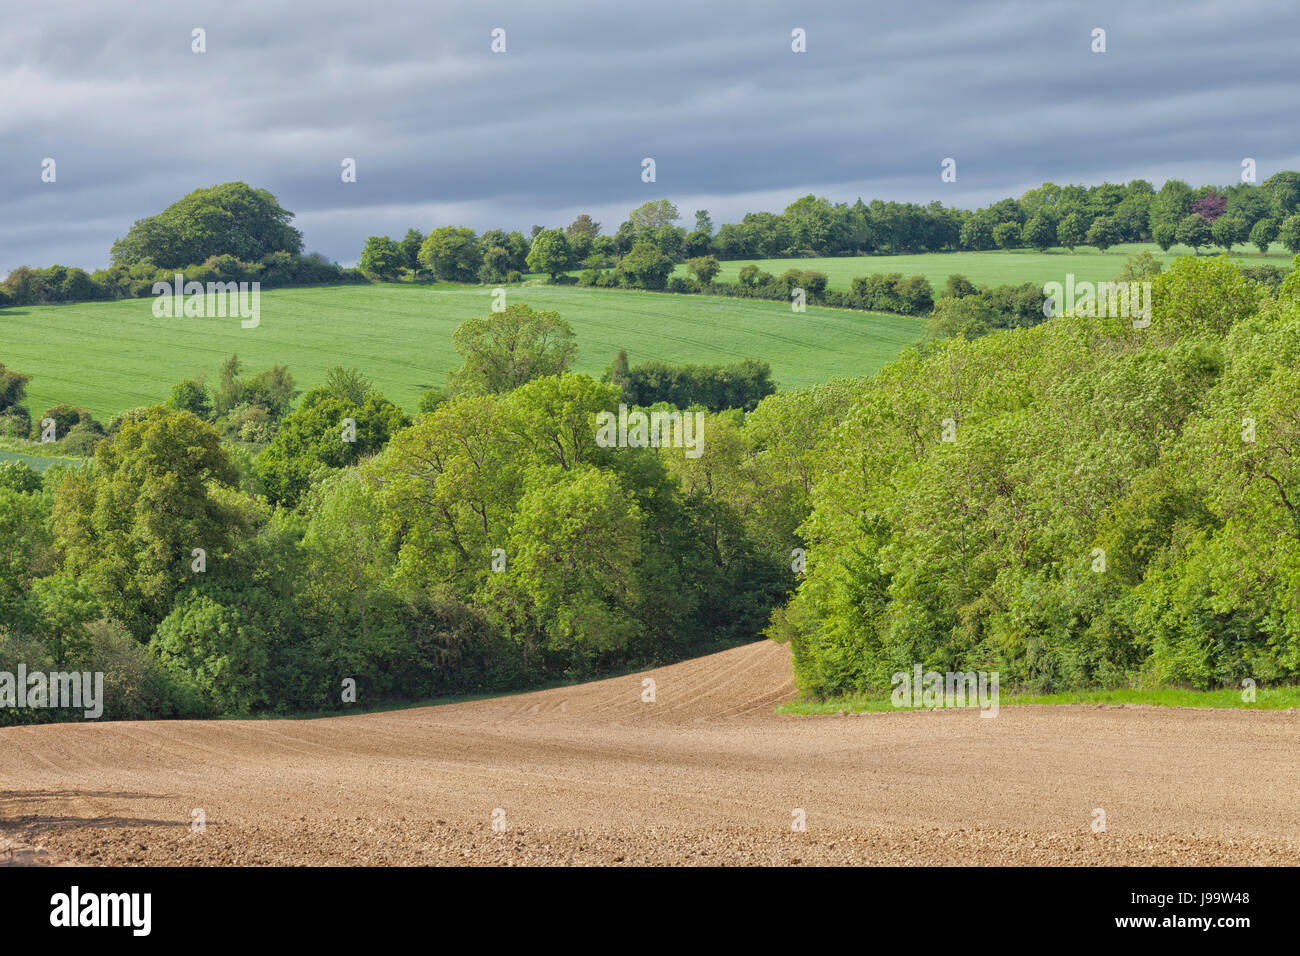 plowed agriculture field between trees and green wheat farmland on a hill in an English countryside . - Stock Image